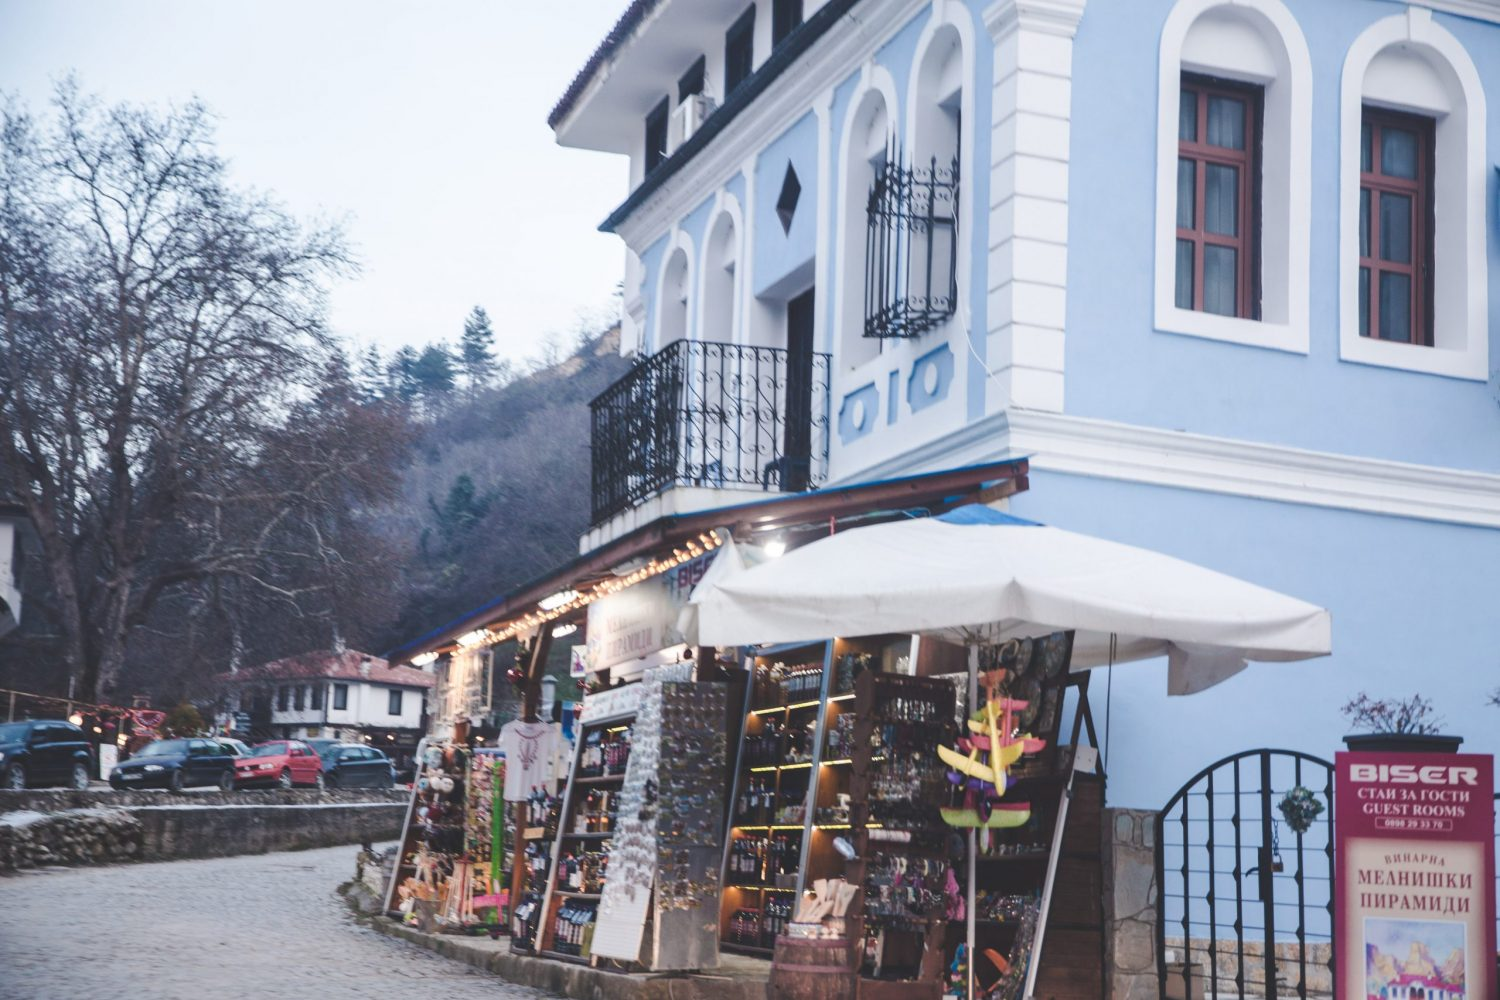 A light blue building on the main street in Melnik, Bulgaria that sells various goods.